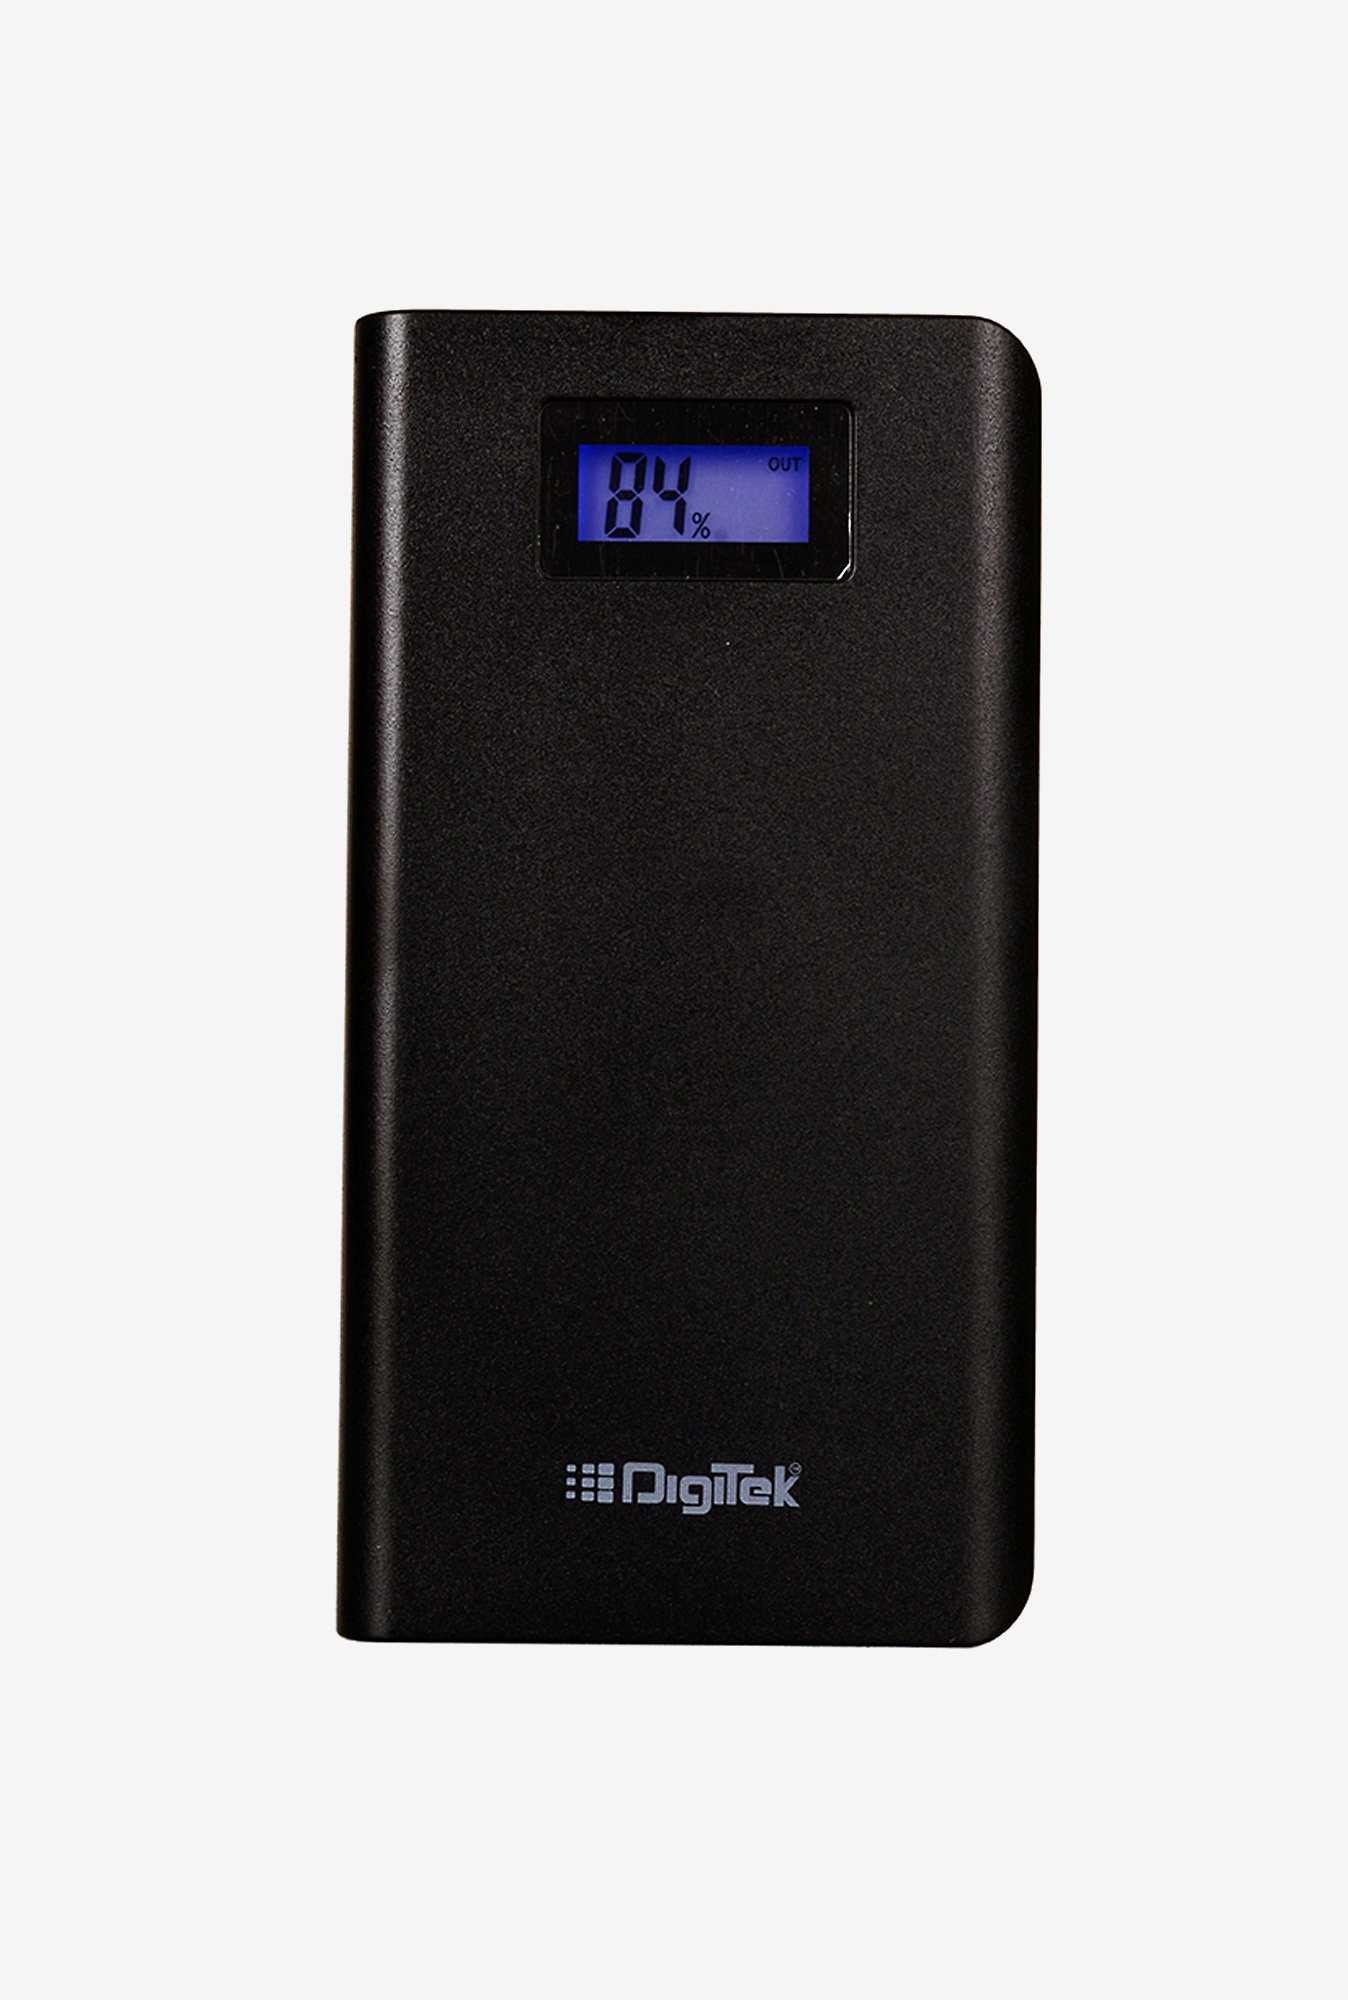 Digitek DIP15600L 15600 mAh Power Bank (Black)